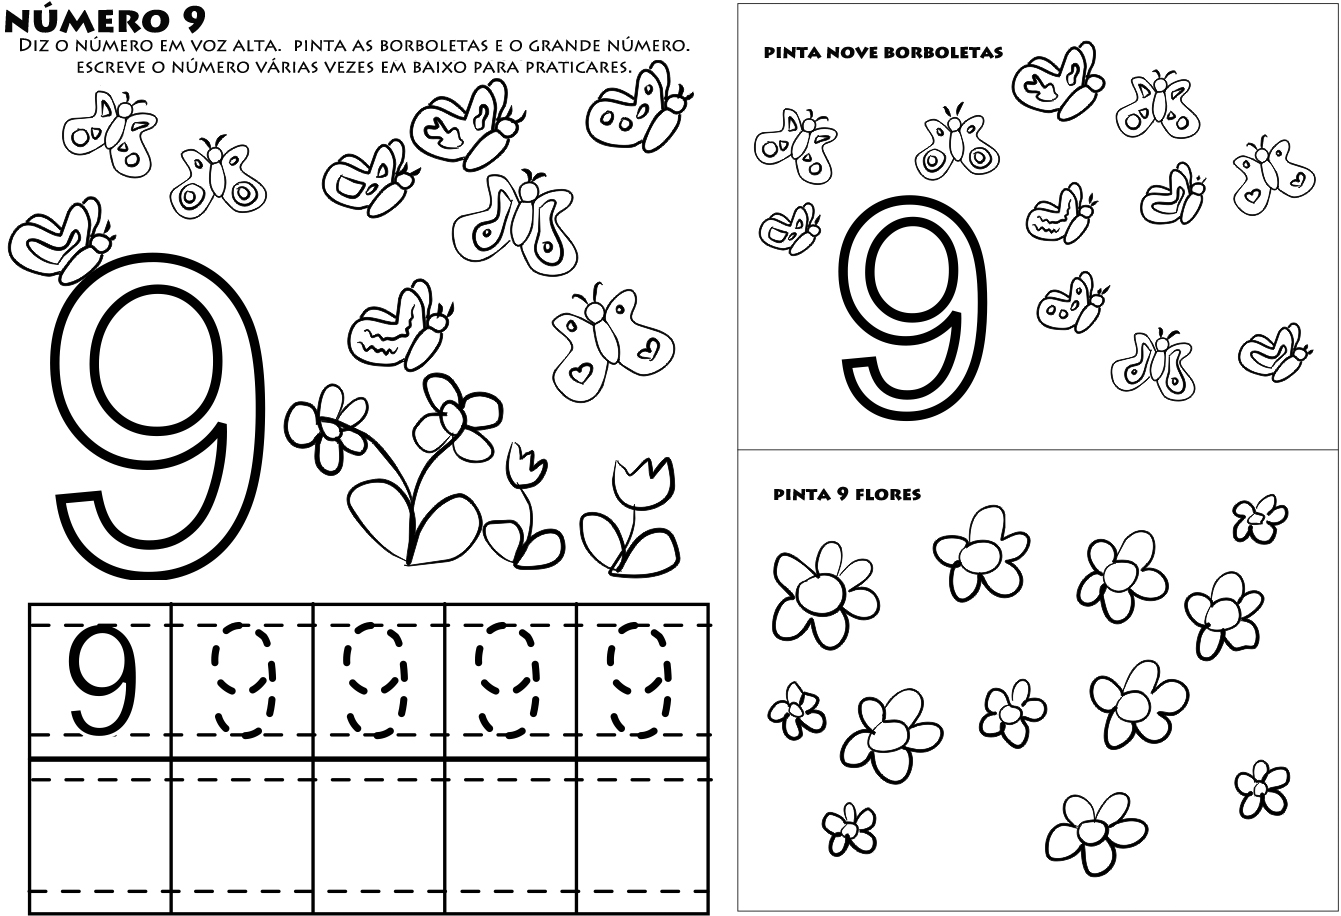 Colorir E Divertido Numero 9 Para Colorir